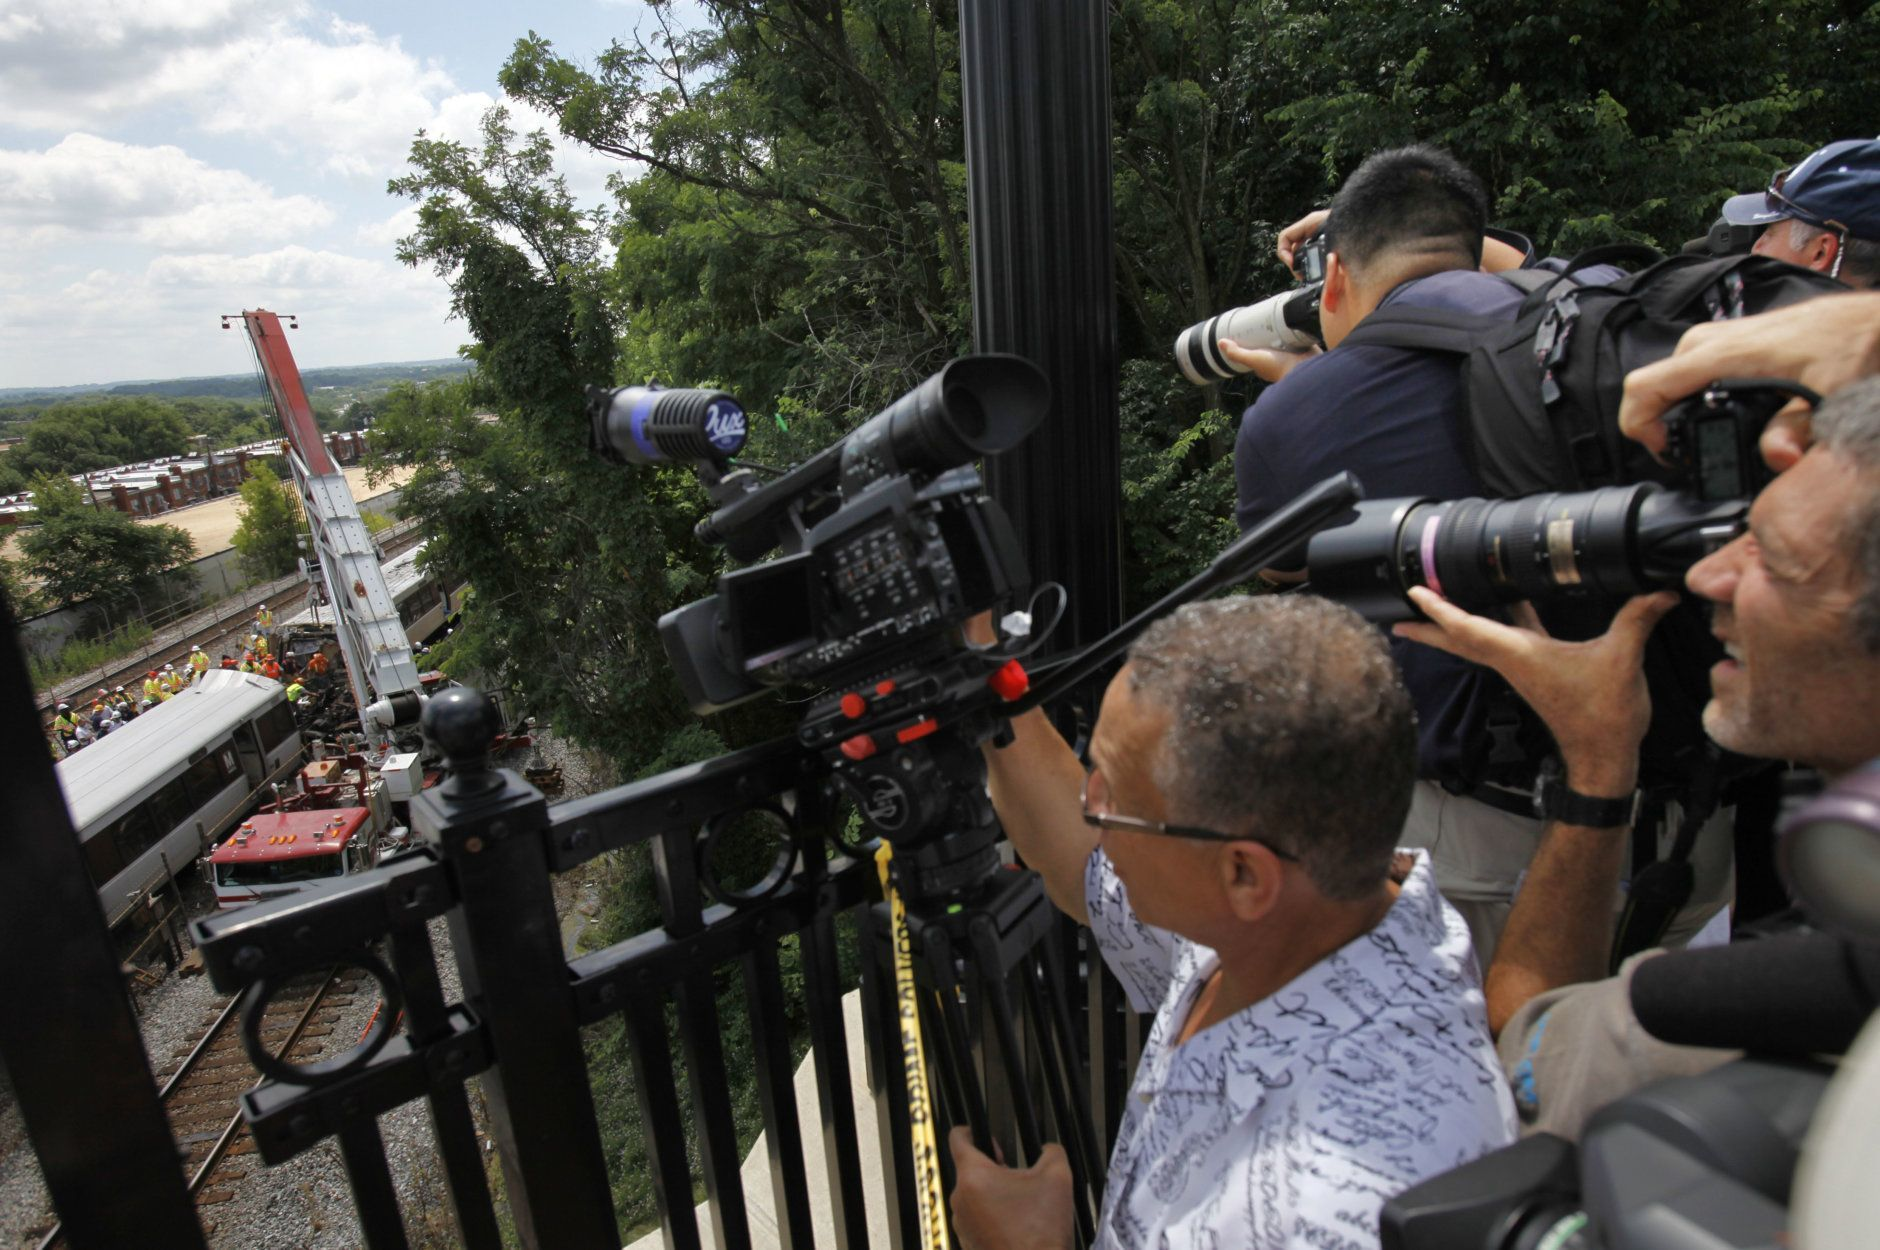 Members of the media record emergency personnel as they work at the site in Washington, Tuesday, June 23, 2009, where two metro trains collided on Monday. (AP Photo/Jacquelyn Martin)